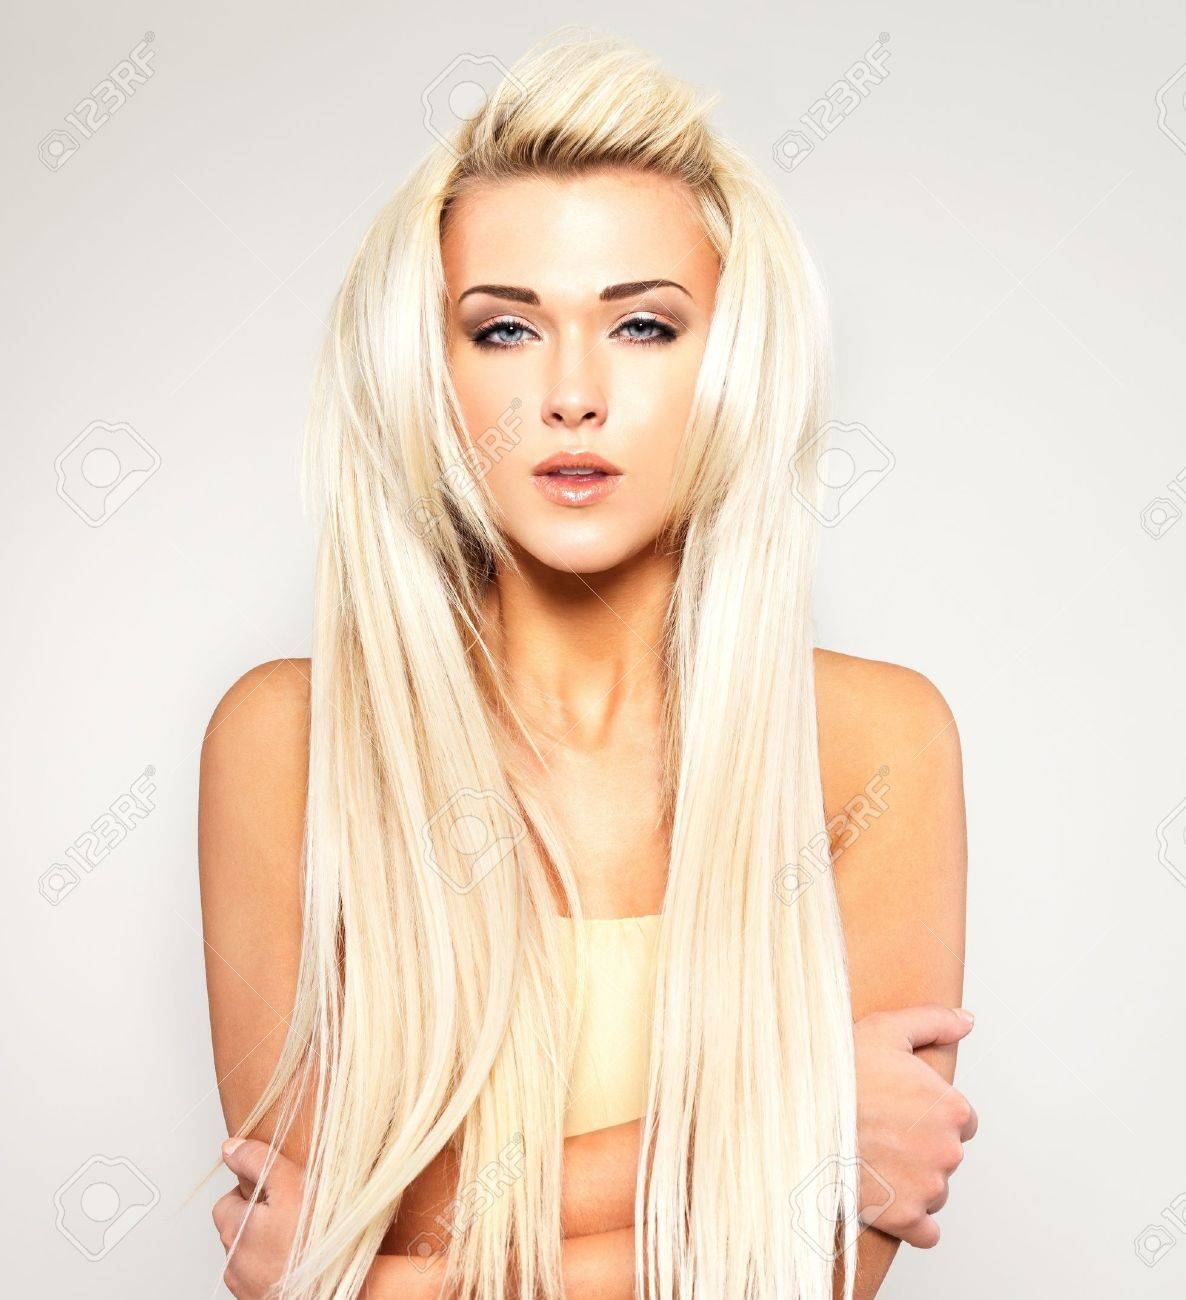 Beautiful woman with long straight blond hair. Fashion model posing at studio. Stock Photo - 18462497